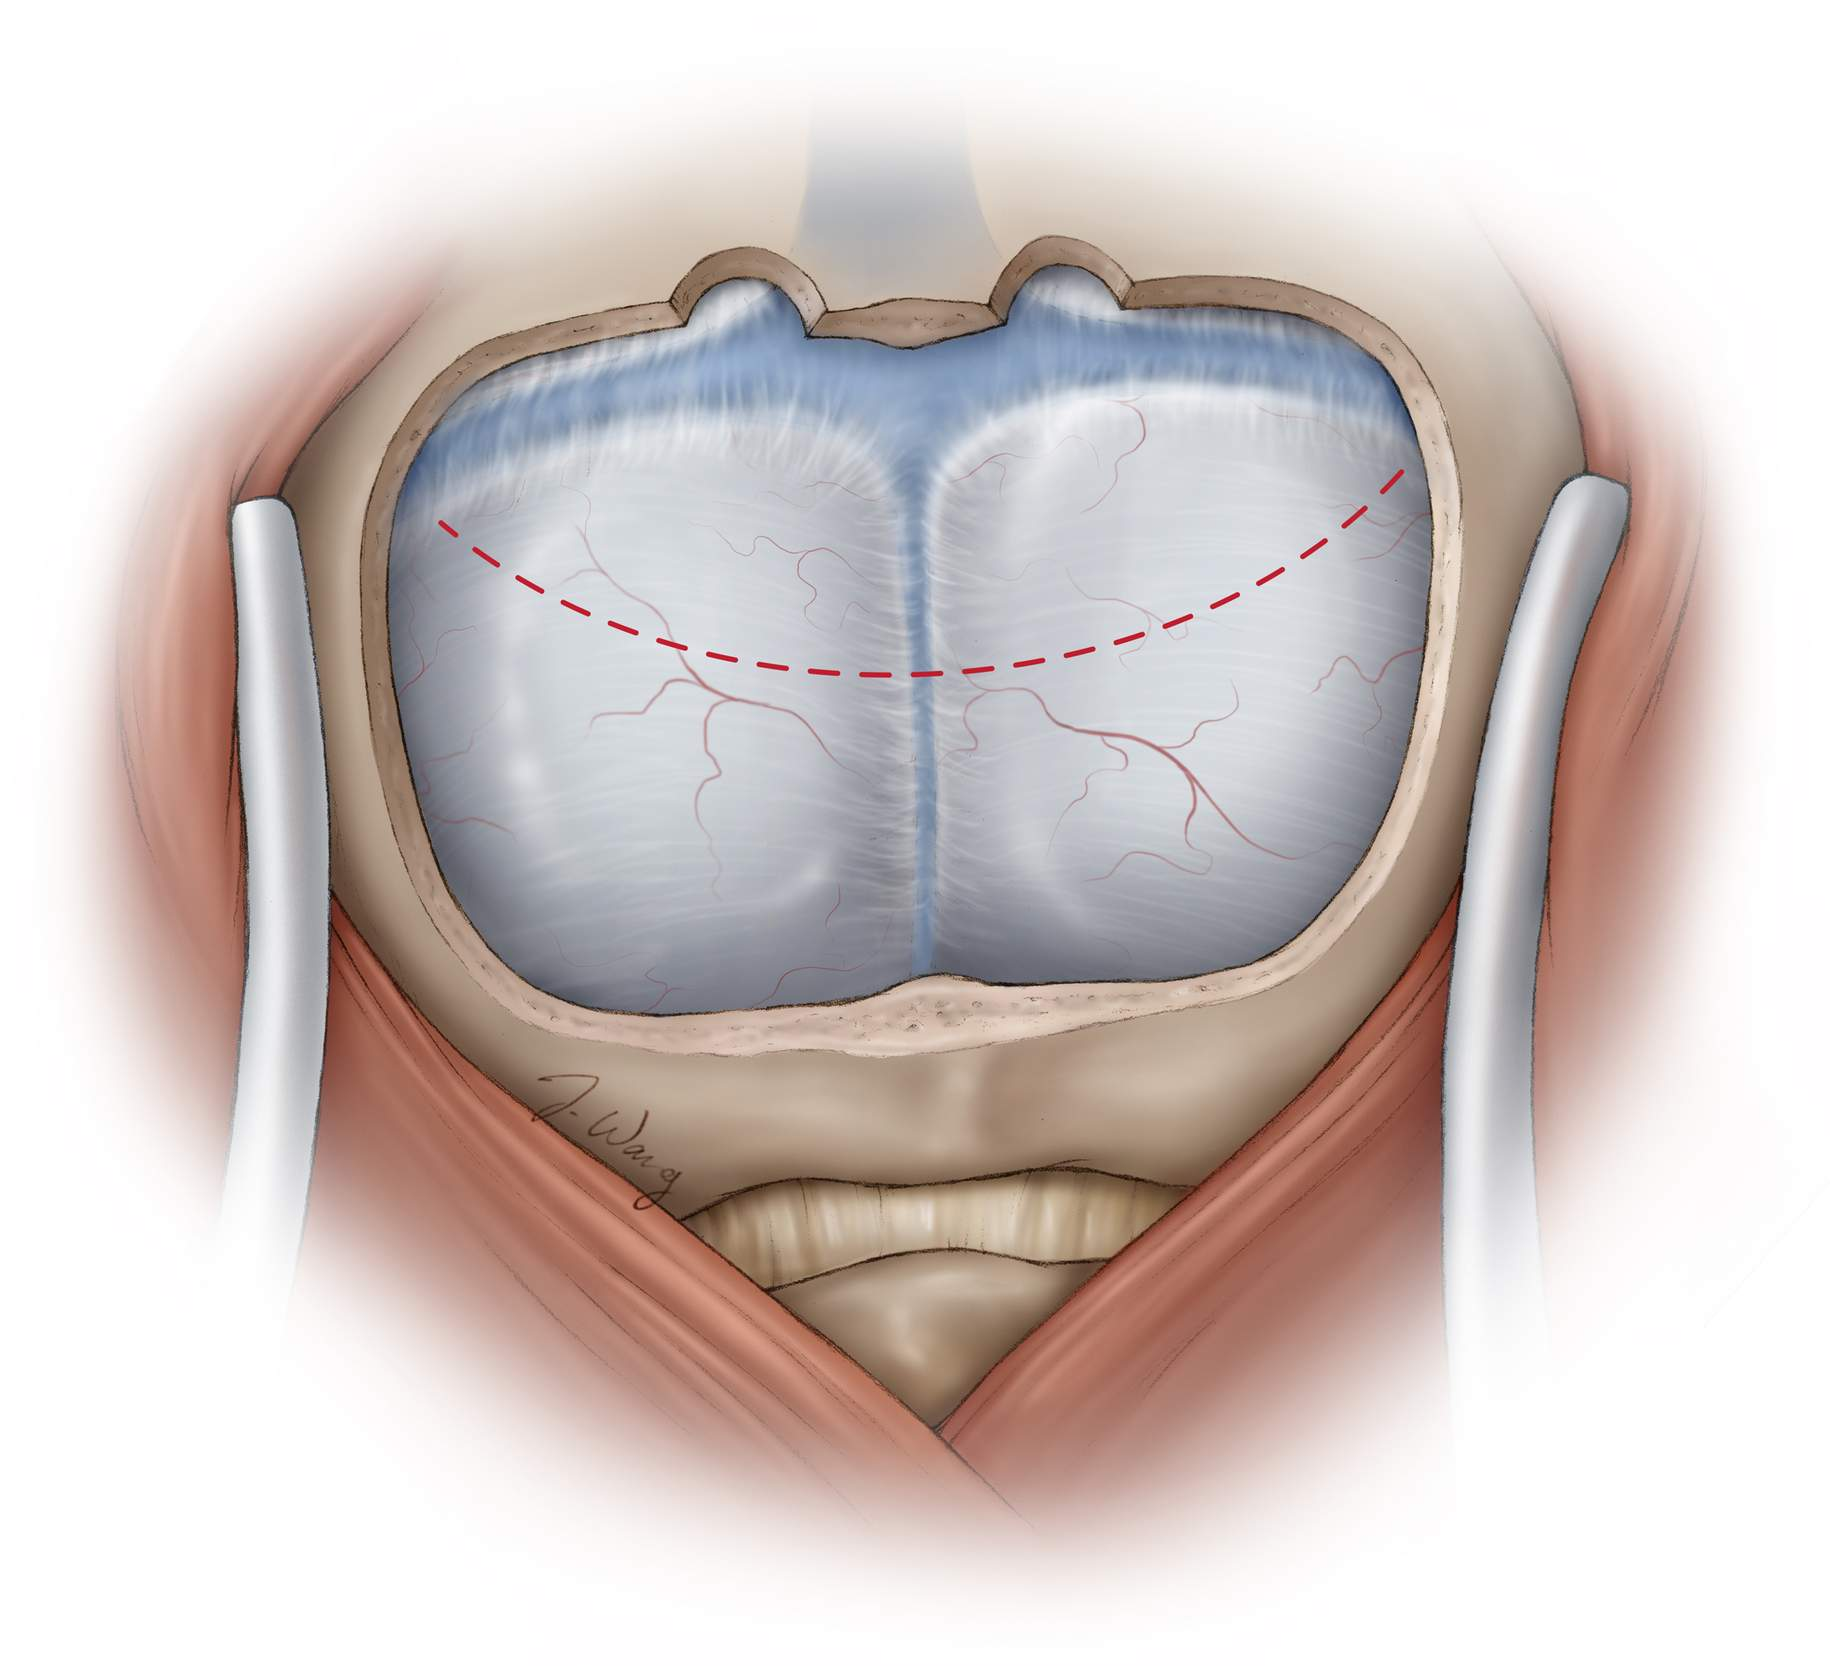 Figure 6: The fear of a dural venous injury should not deter the operator from generously uncovering these structures to allow expansion of the supracerebellar operative corridor through mobilization of the dural sinuses superiorly. Placement of burr holes over the transverse sinuses is relatively safe, and correct use of the footplate tip pursuing the contours of the inner table leads to a single-piece bone flap exposing the dura and the roof of the venous sinuses.